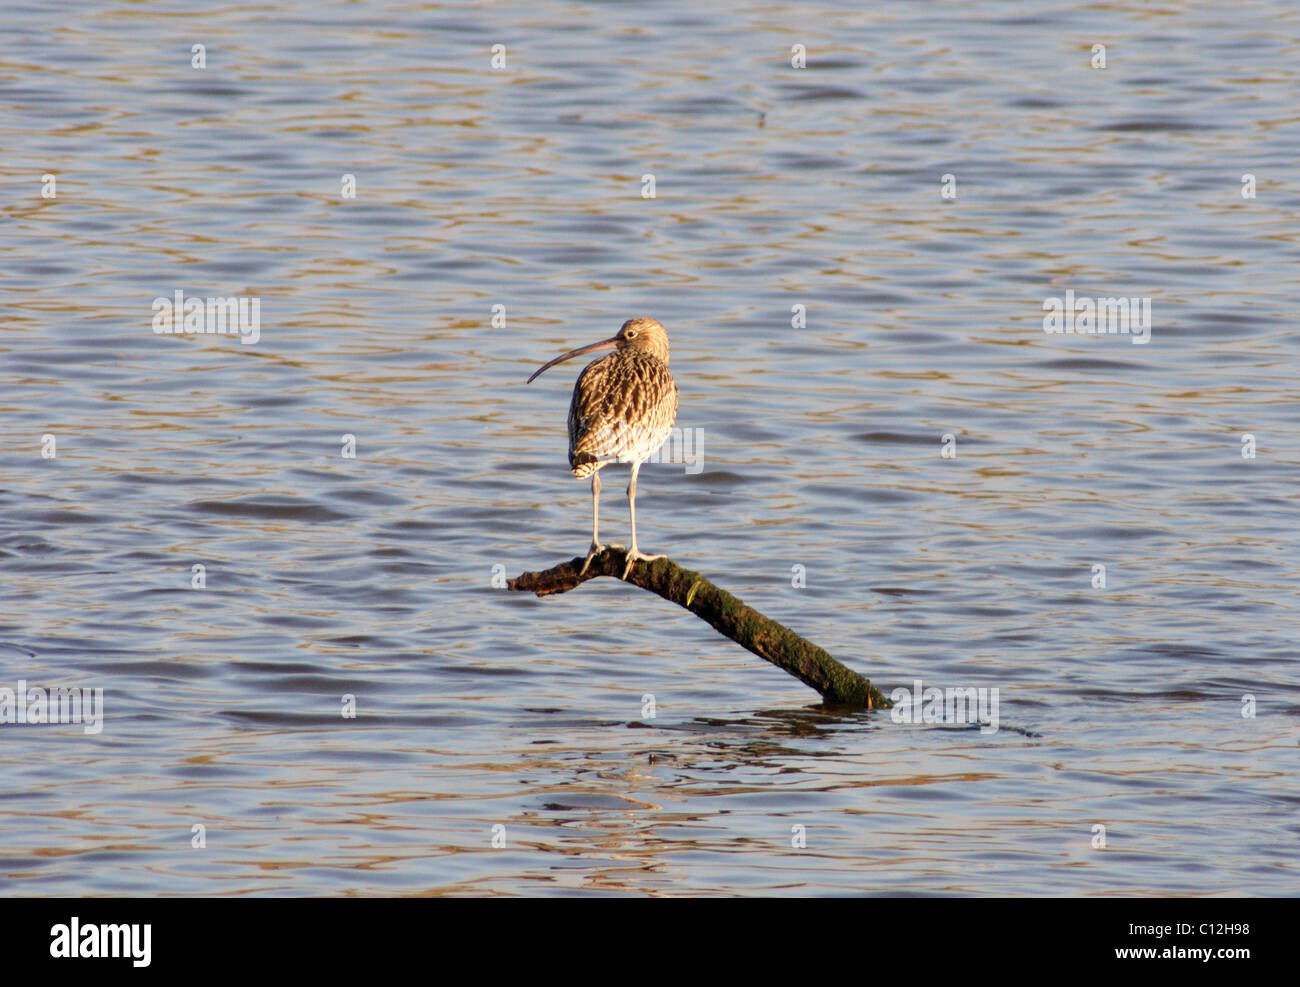 Curlew resting on branch, Teifi Marshes, Pembrokeshire, Wales, United Kingdom Stock Photo